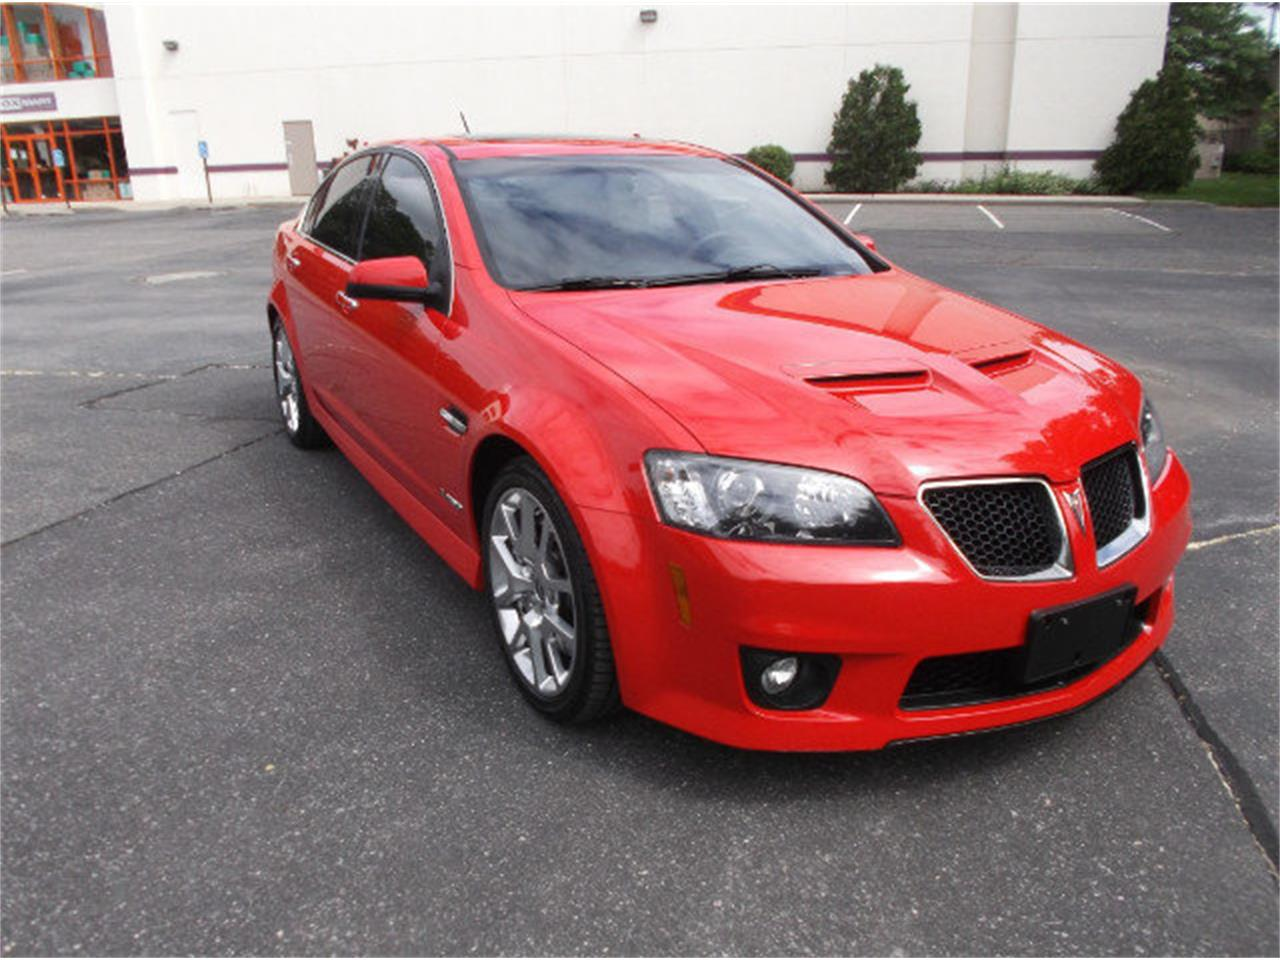 Large Picture of '09 G8 located in New York - $26,995.00 - LDI6